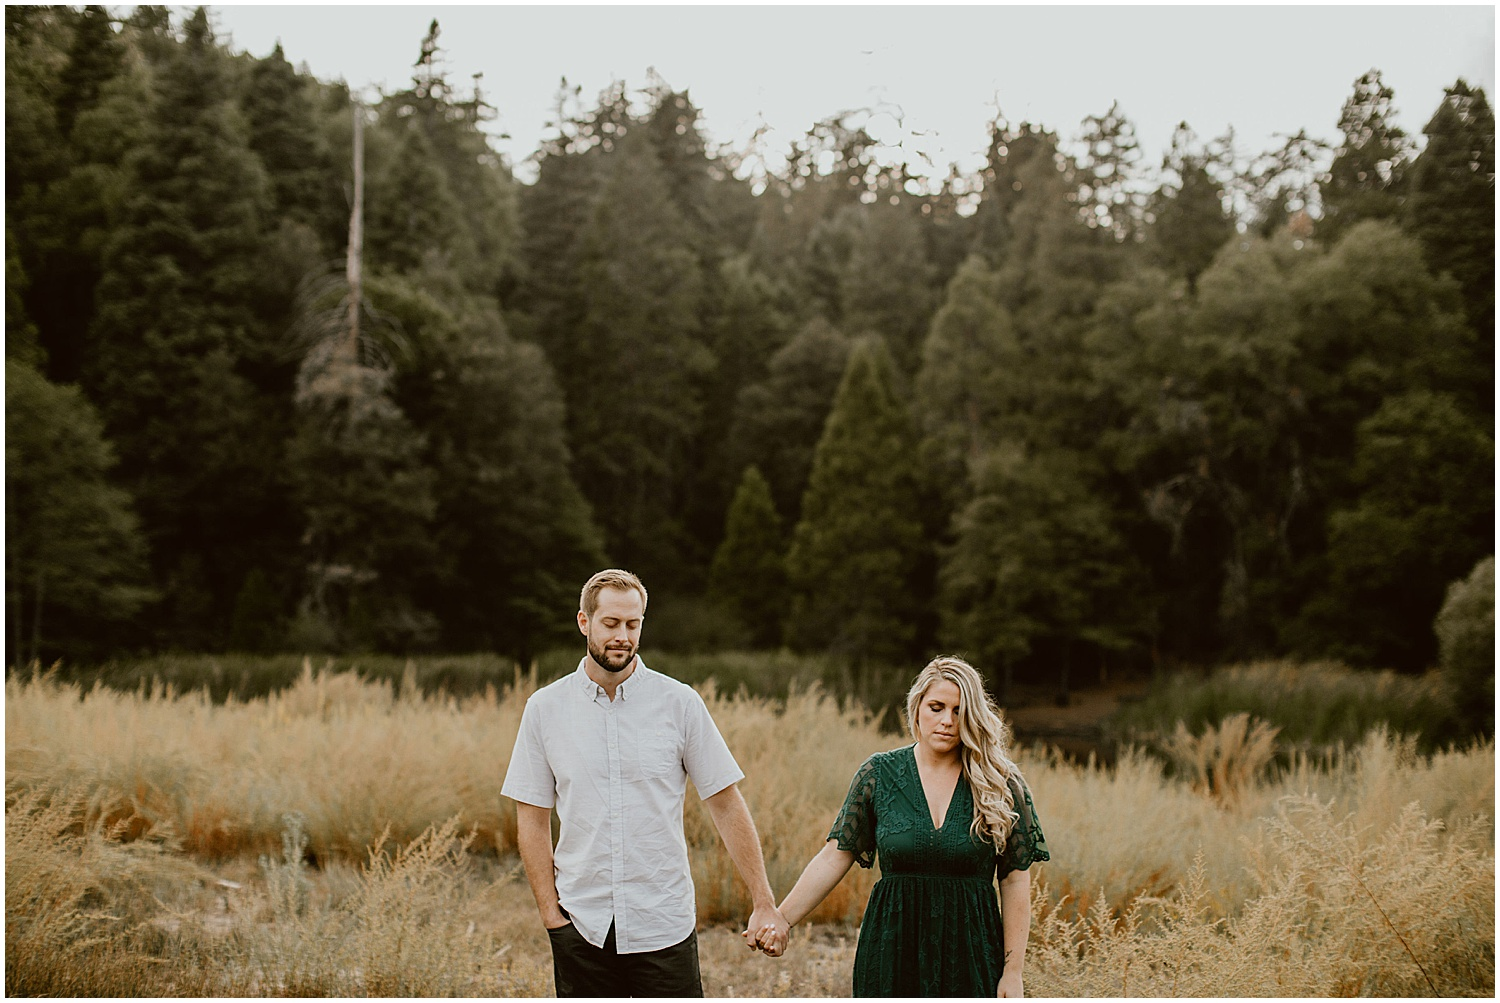 Palomar-Mountain-Engagement-D+M-Diana-Lake-Photography-84.jpg